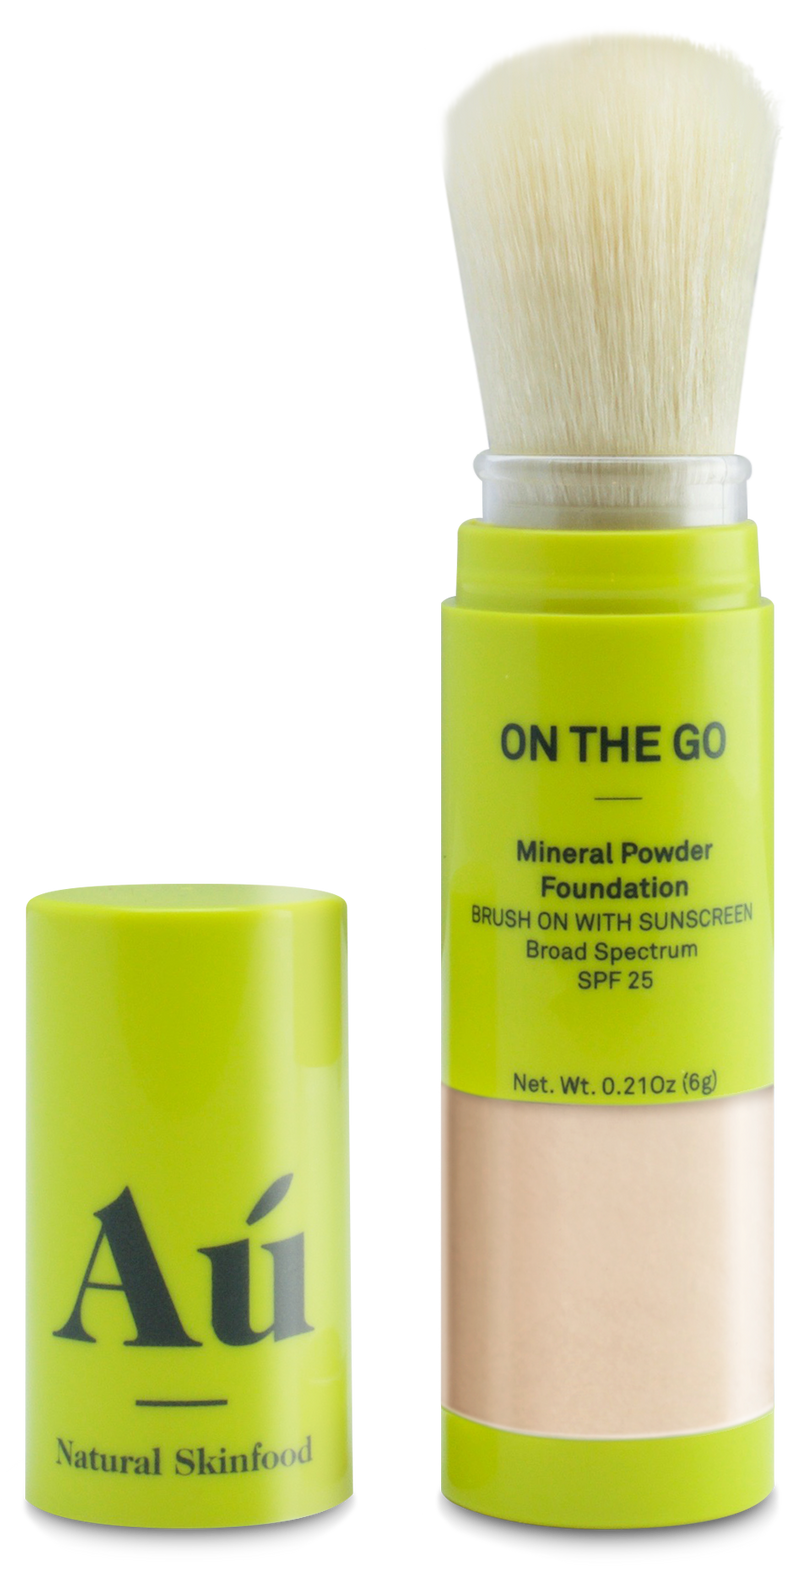 Au On The Go Mineral Powder Light